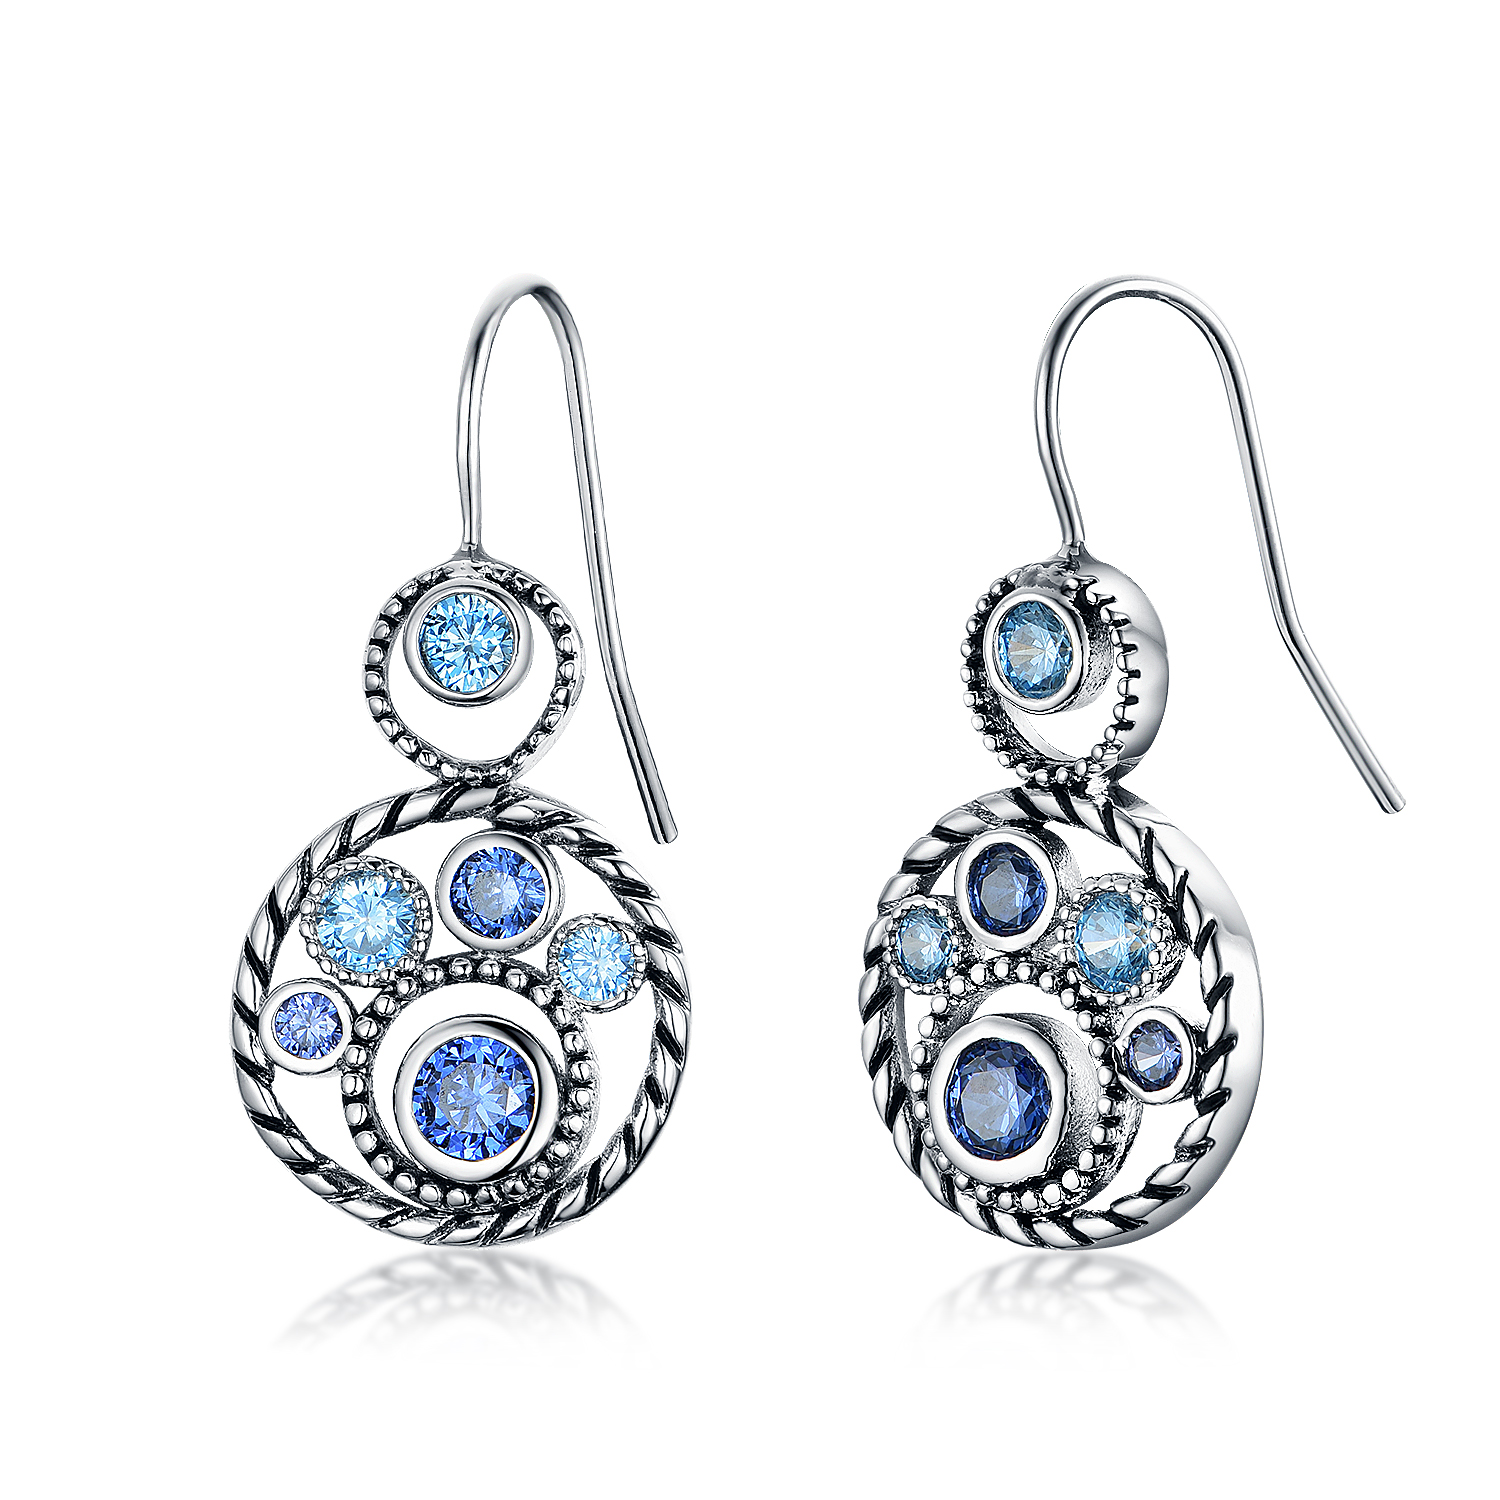 ST2652E-Designer inspired Cable Circel Earring with bezel setting Tanzanite CZ & Aquamarine Spinel  in Brass/Copper under Rhodium plated from China Top Jewelry factory